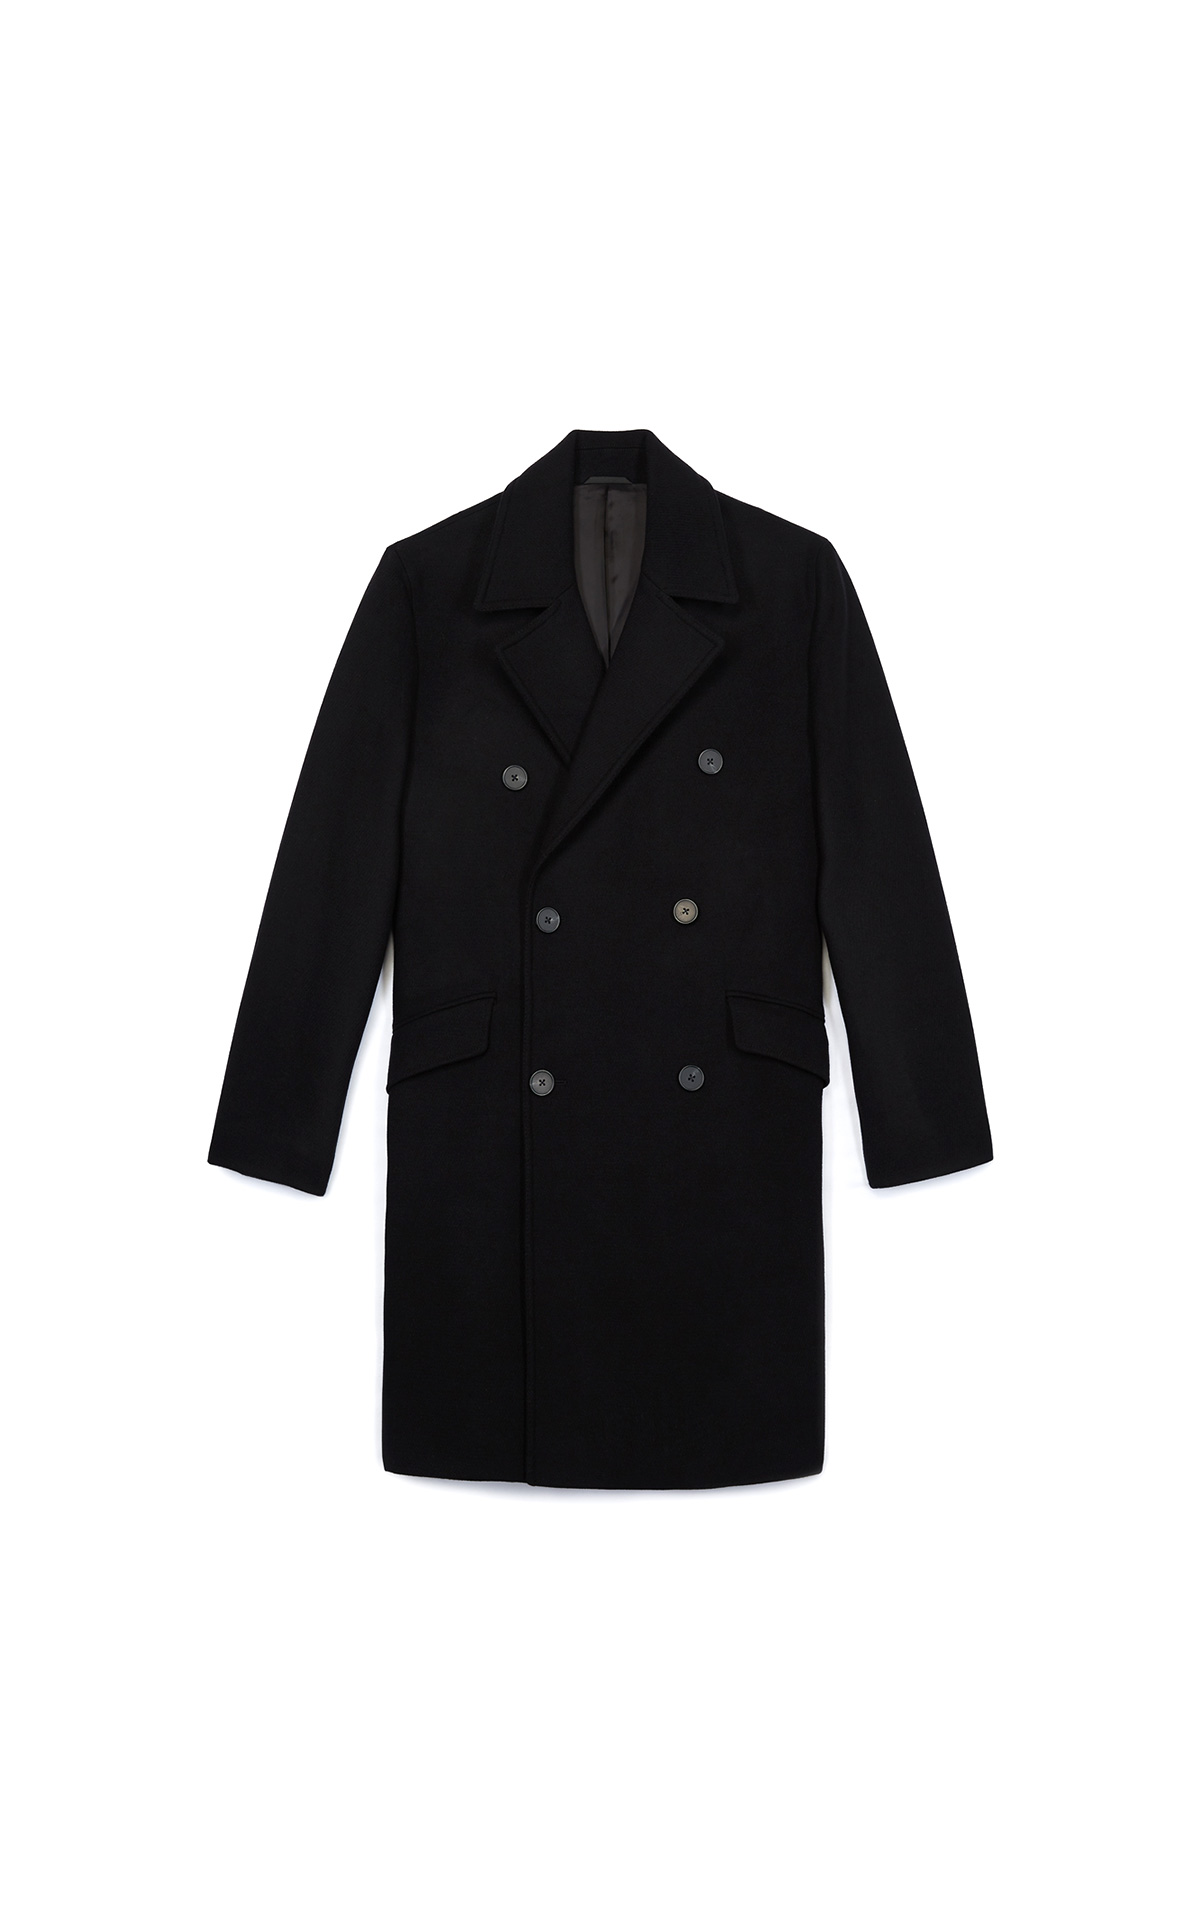 The Kooples Manteau homme noir